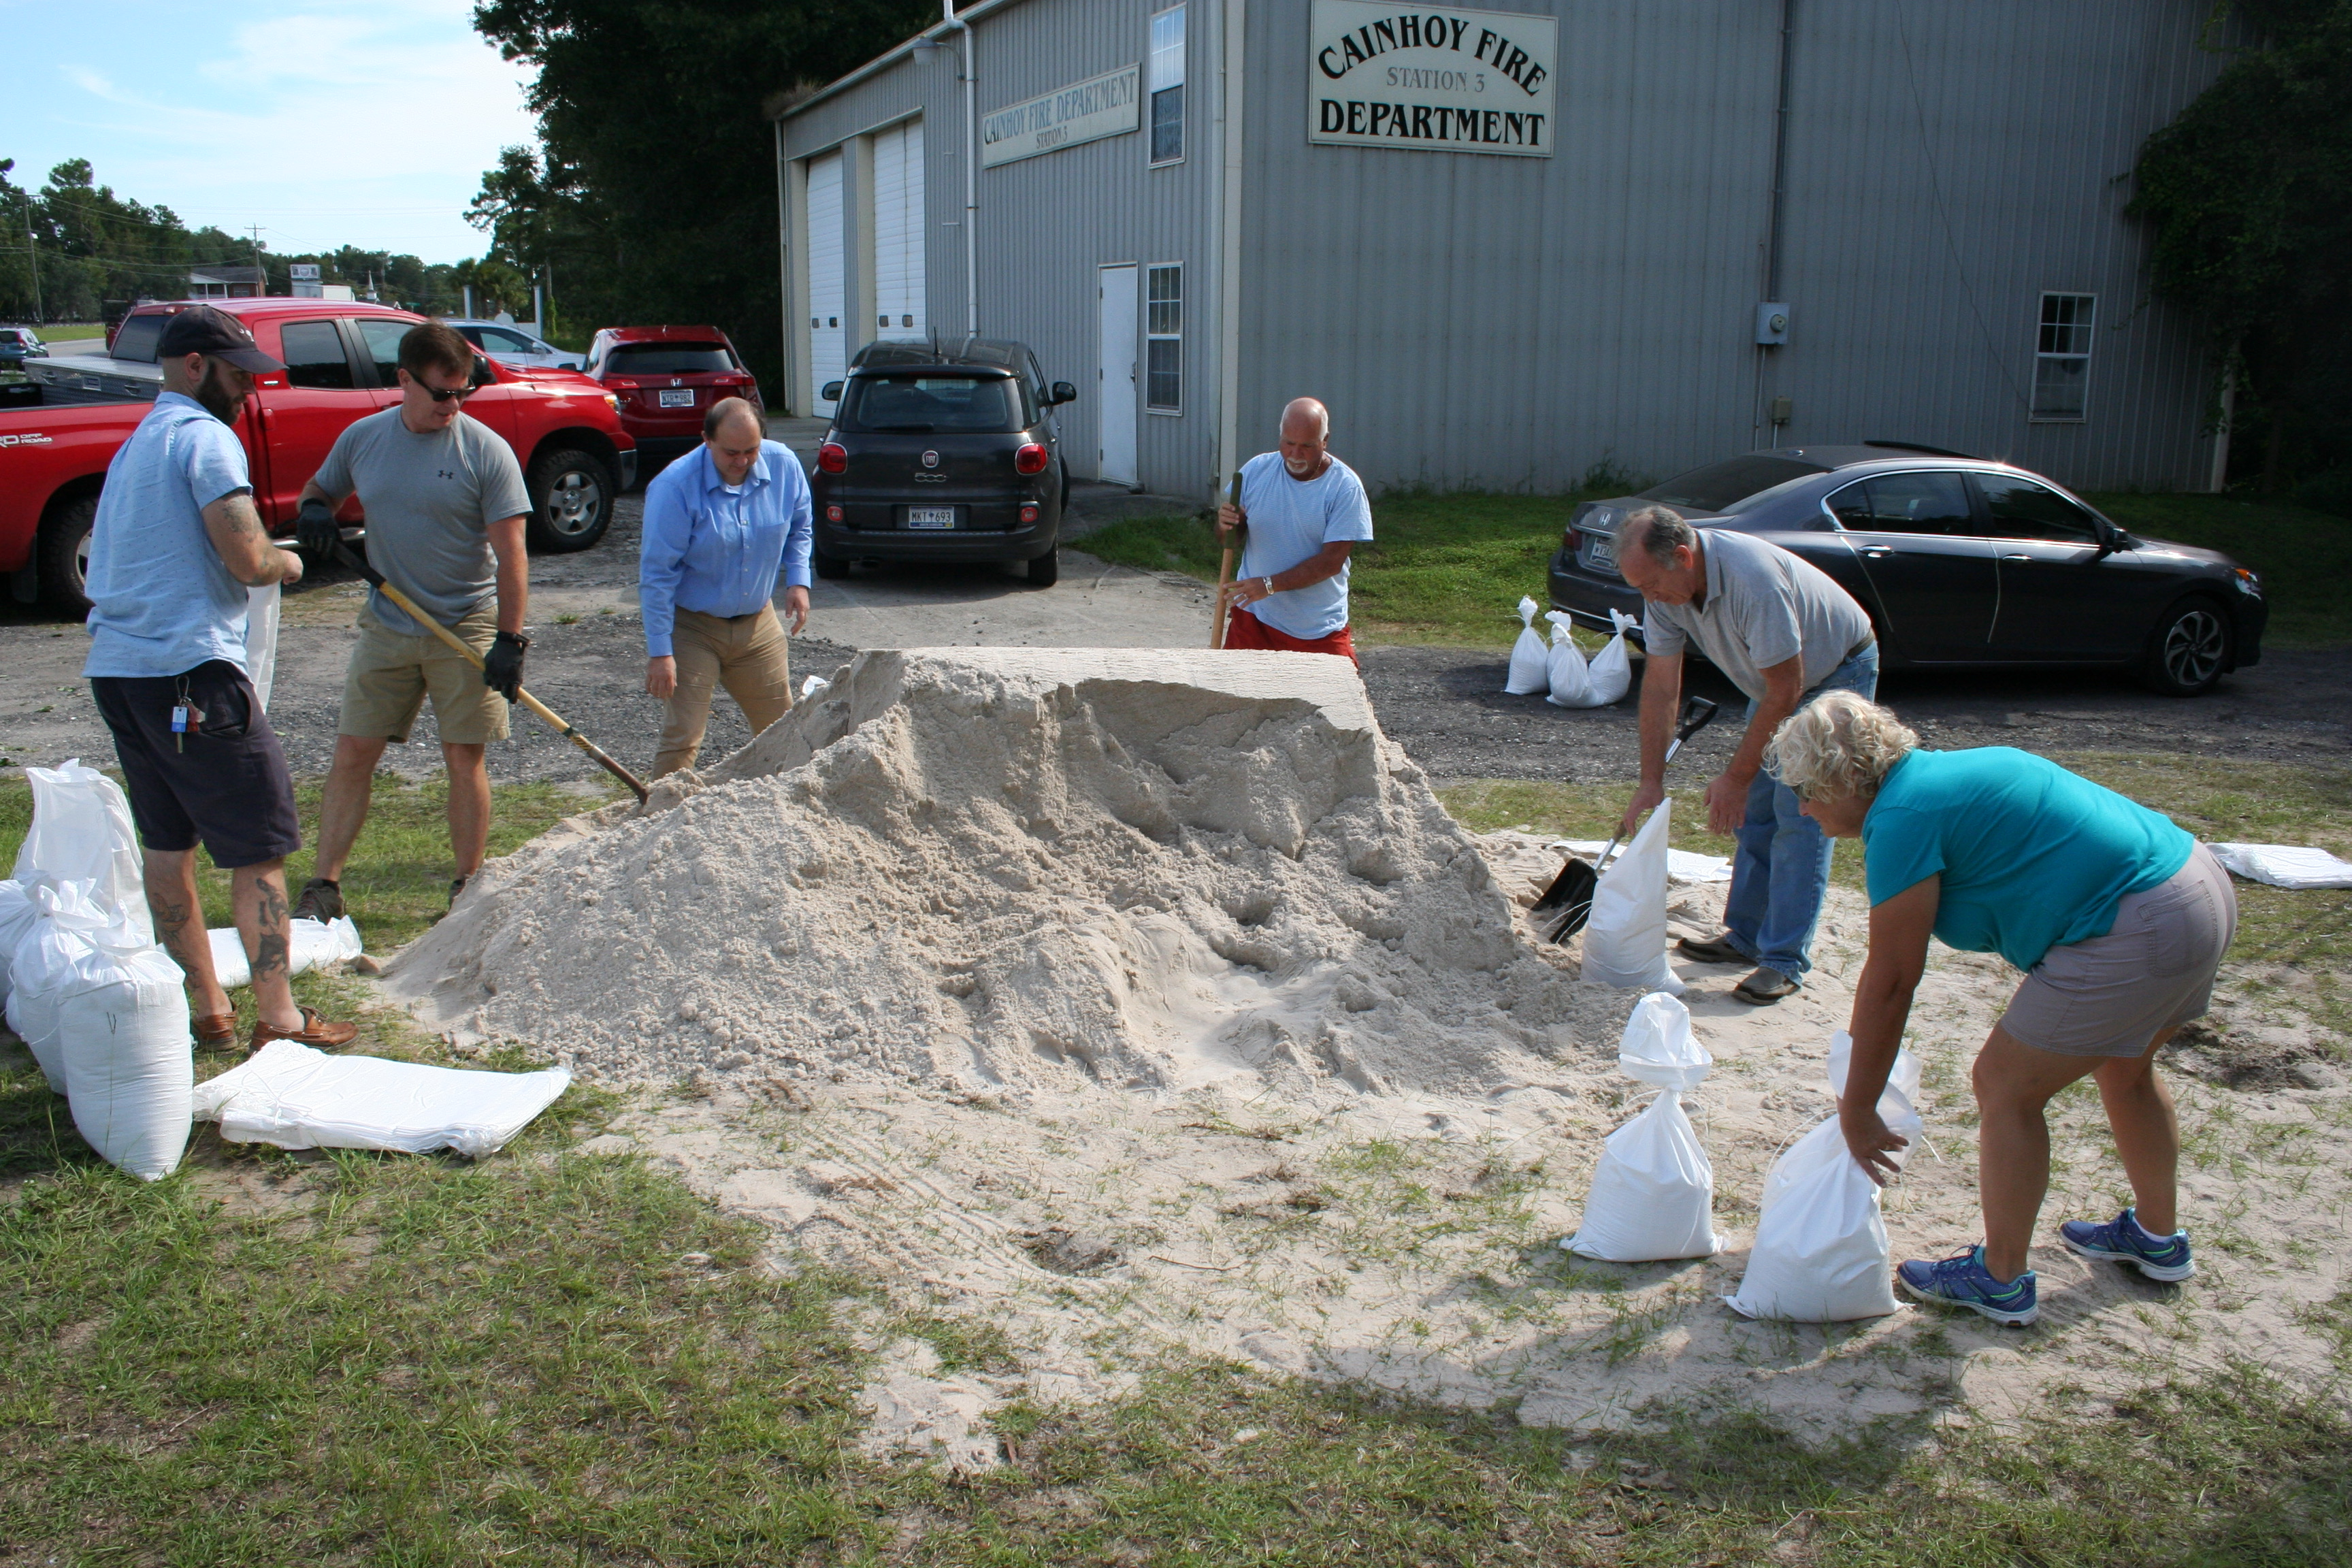 Local residents stopped in at the Cainhoy Fire Department Station No. 3 on Clements Ferry Road to pick up sandbags prior to the storm.